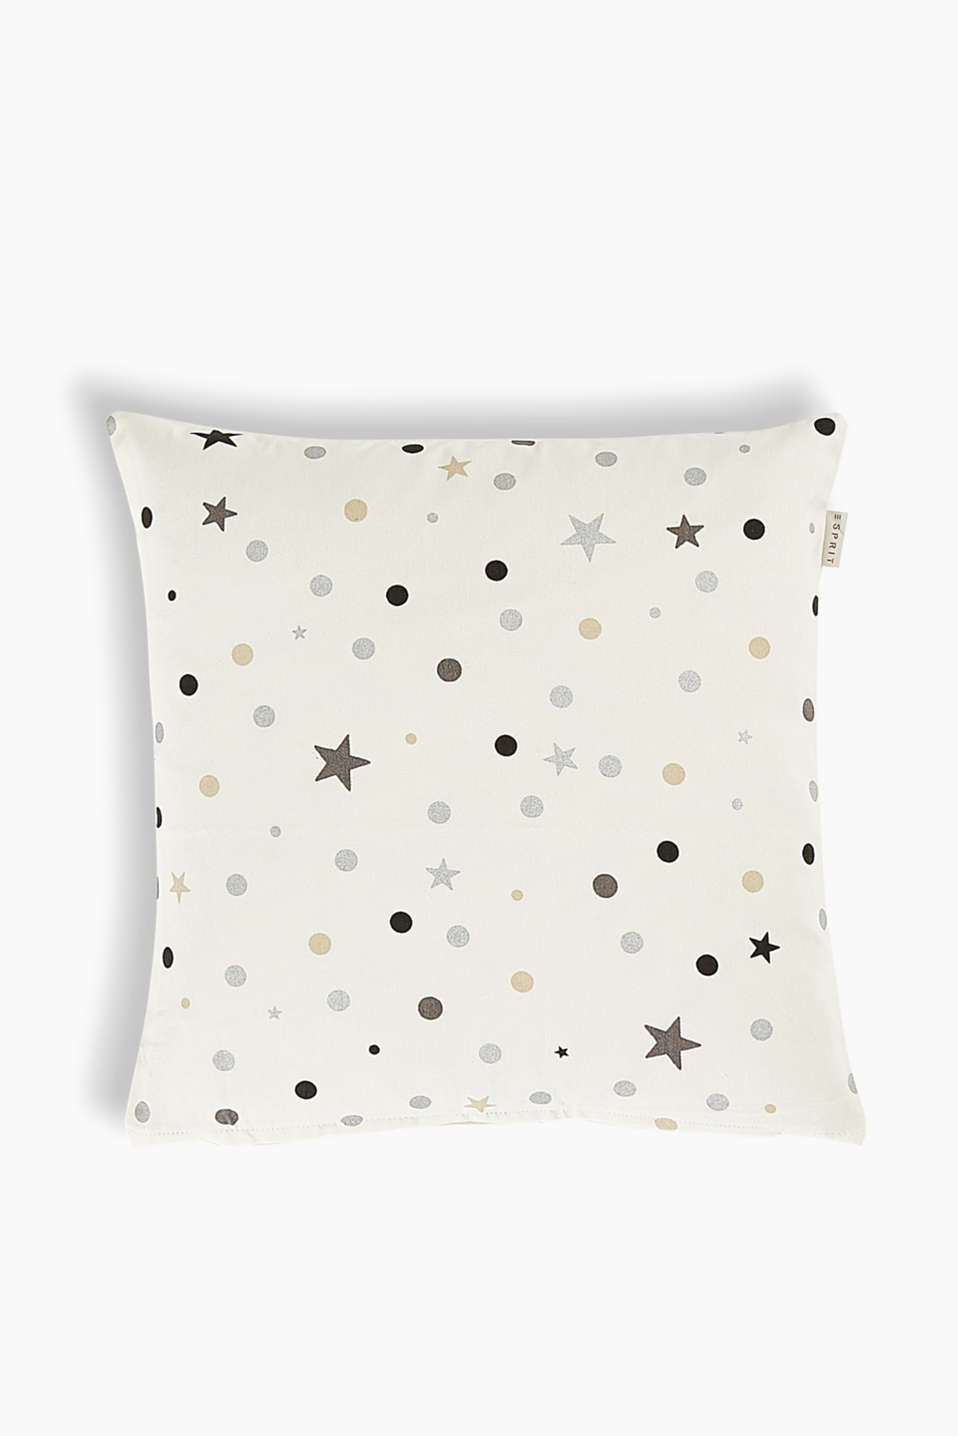 SHIMMER Collection - A stylish head-turner in your home décor thanks to the metallic stars and polka dots.